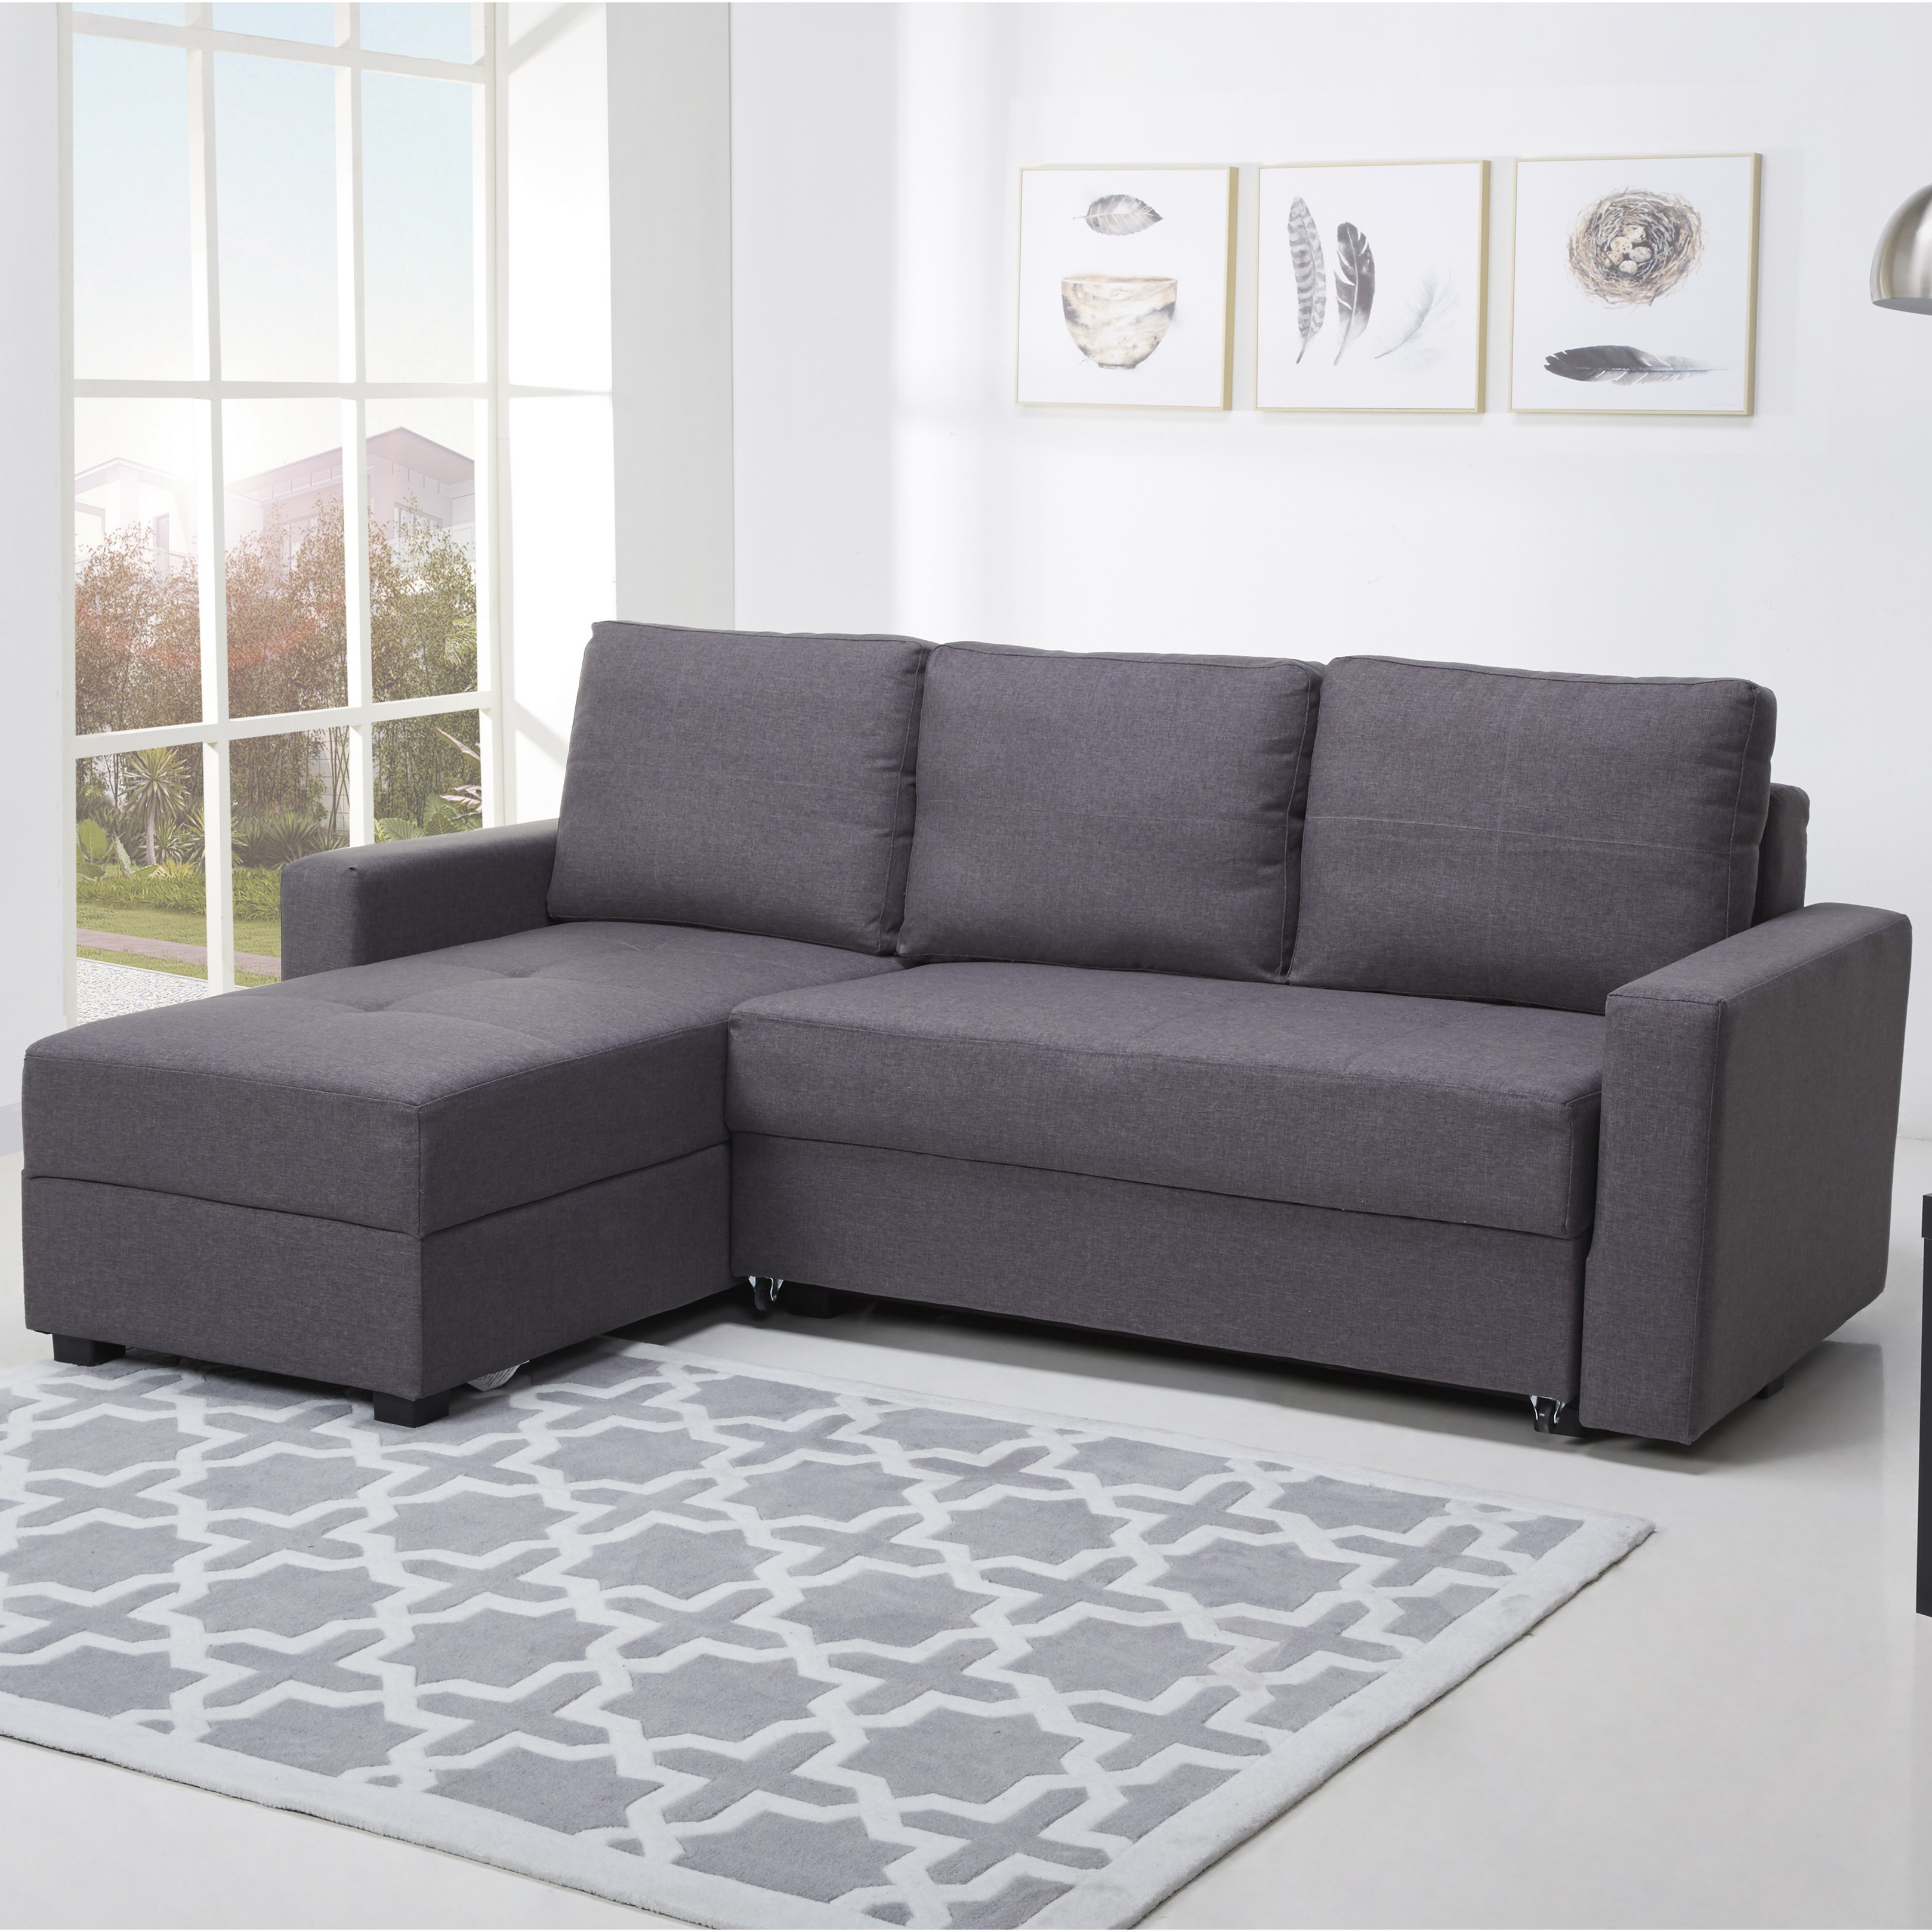 Photo of Rian willow grey fabric corner sofa bed with storage